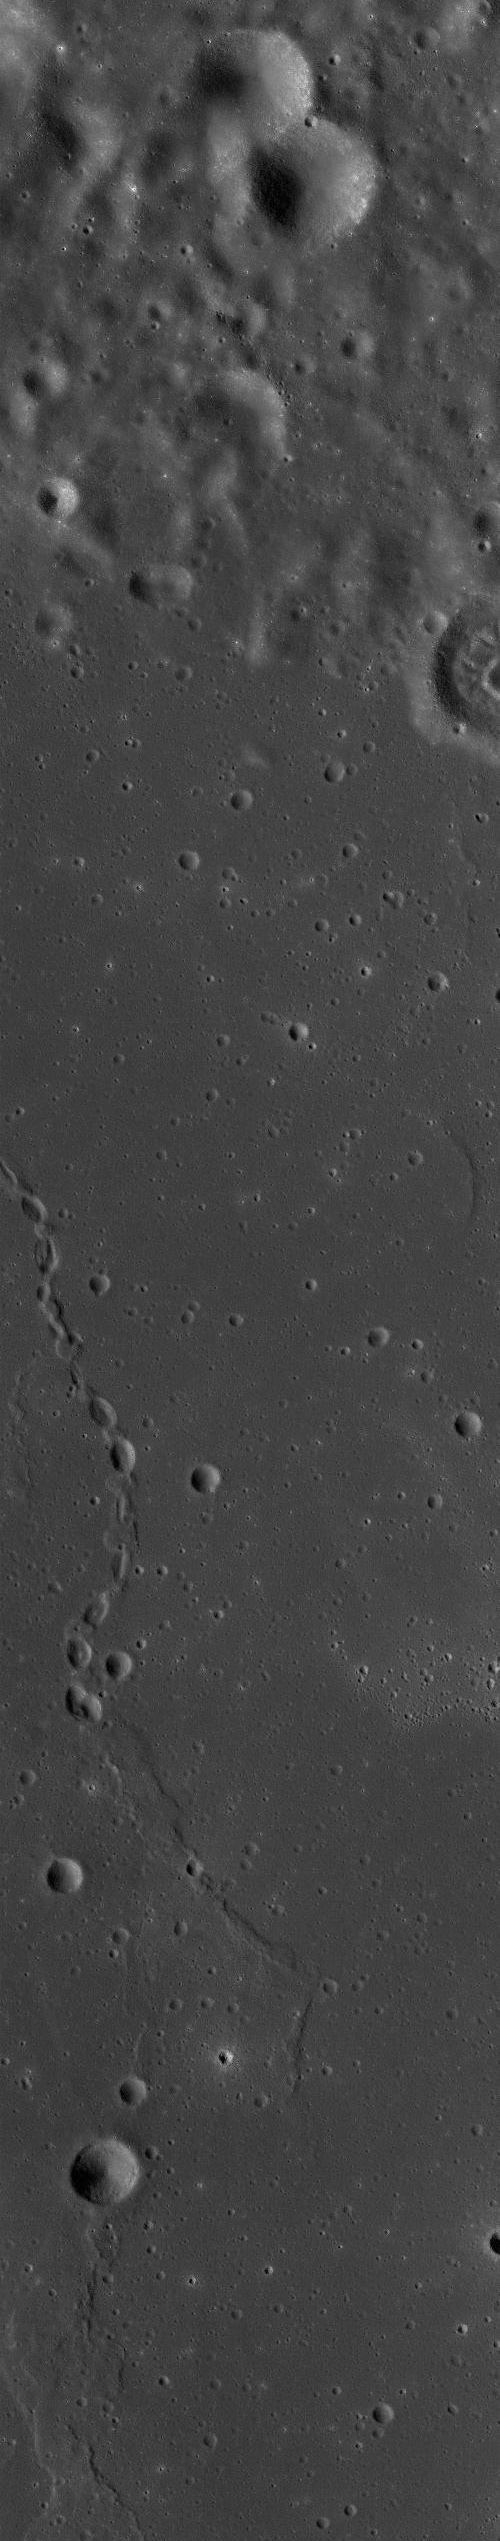 Chandrayaan-1 TMC image of a lunar crater chain